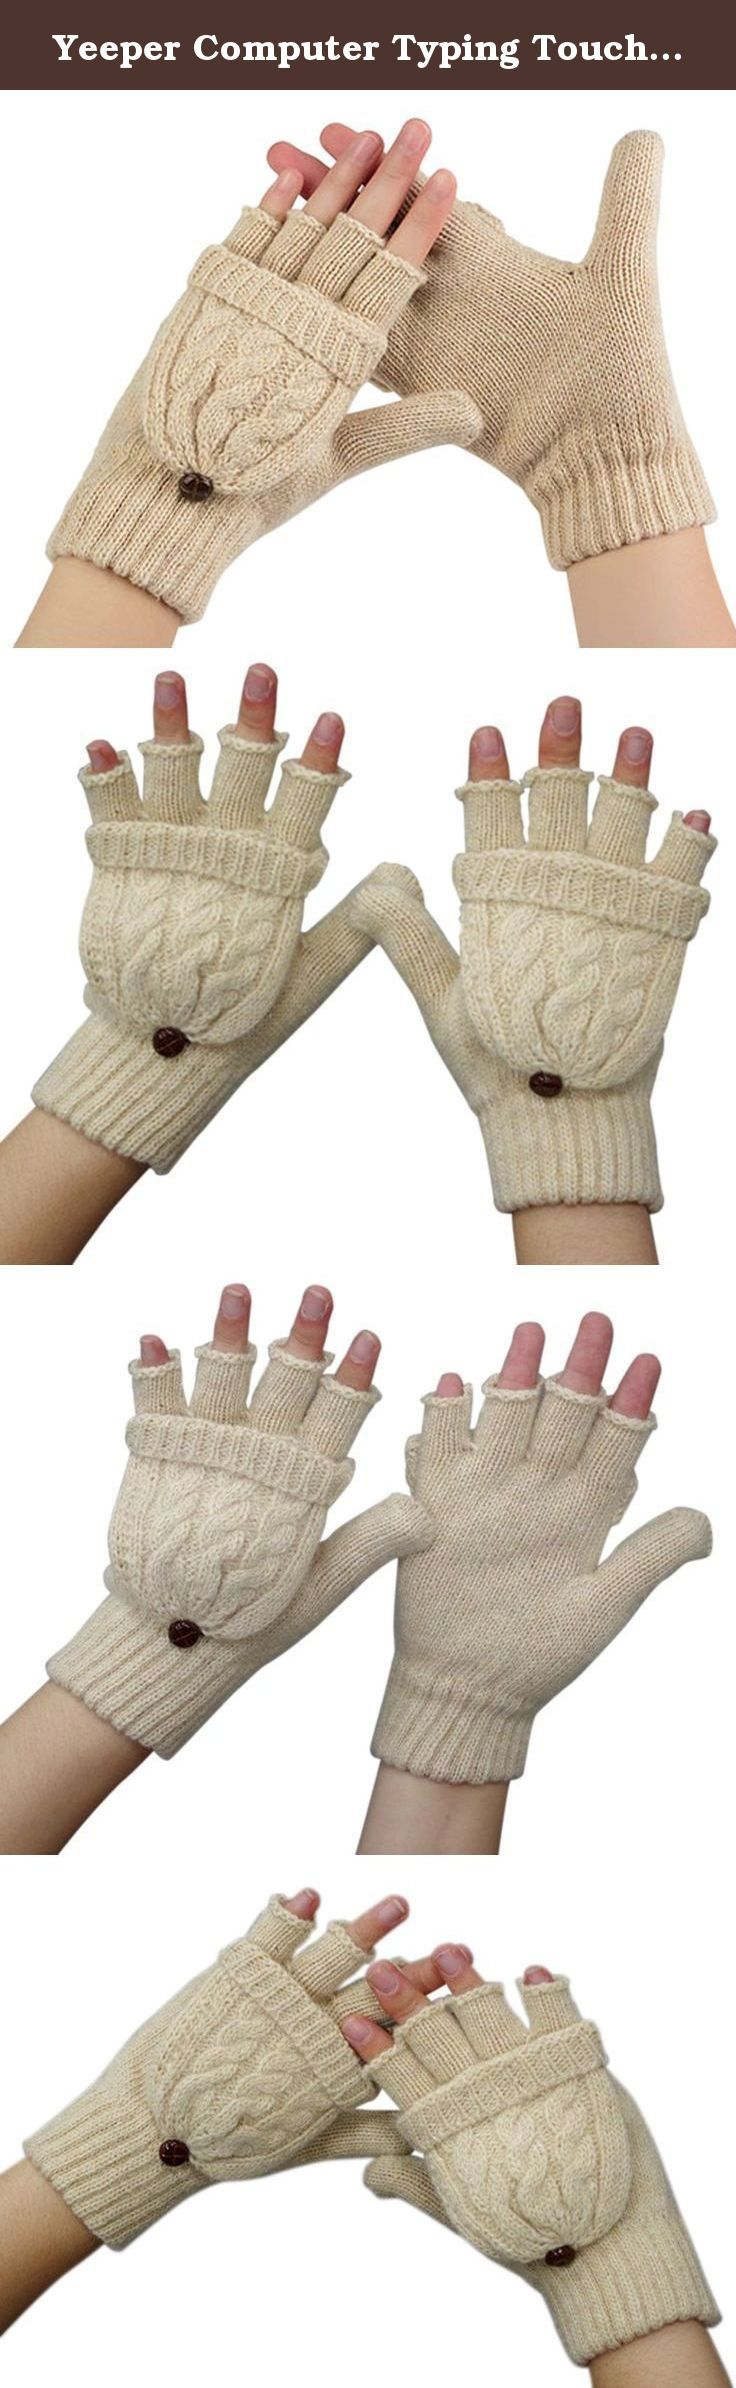 Yeeper Computer Typing Touchscreen Wool Knit Glove (pack of 2). Yeeper gloves will keep your hands comfortable and warm even in some of the coldest conditions.Wear Inside Your Gloves For Extra Warmth. Like Thermal Underwear For Your Fingers.It is the best choice as gift send to lover,friends,parents,colleagues.For more,please feel free to contact us.Thank you!.